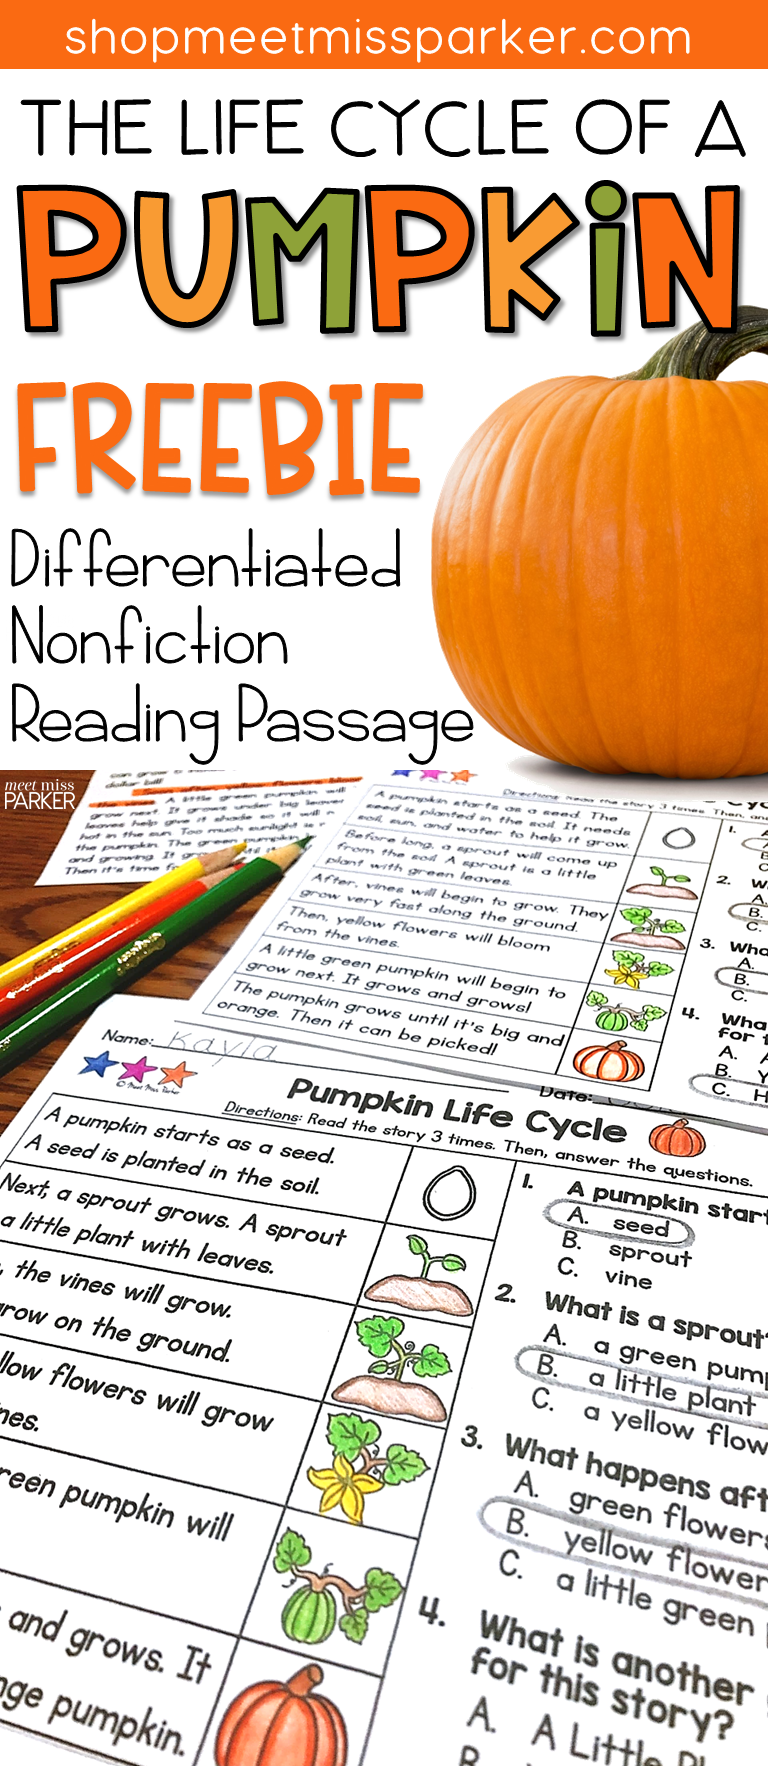 hight resolution of this pumpkin life cycle reading comprehension passage can be used for reading interventions literacy centers homework and guided reading groups in your